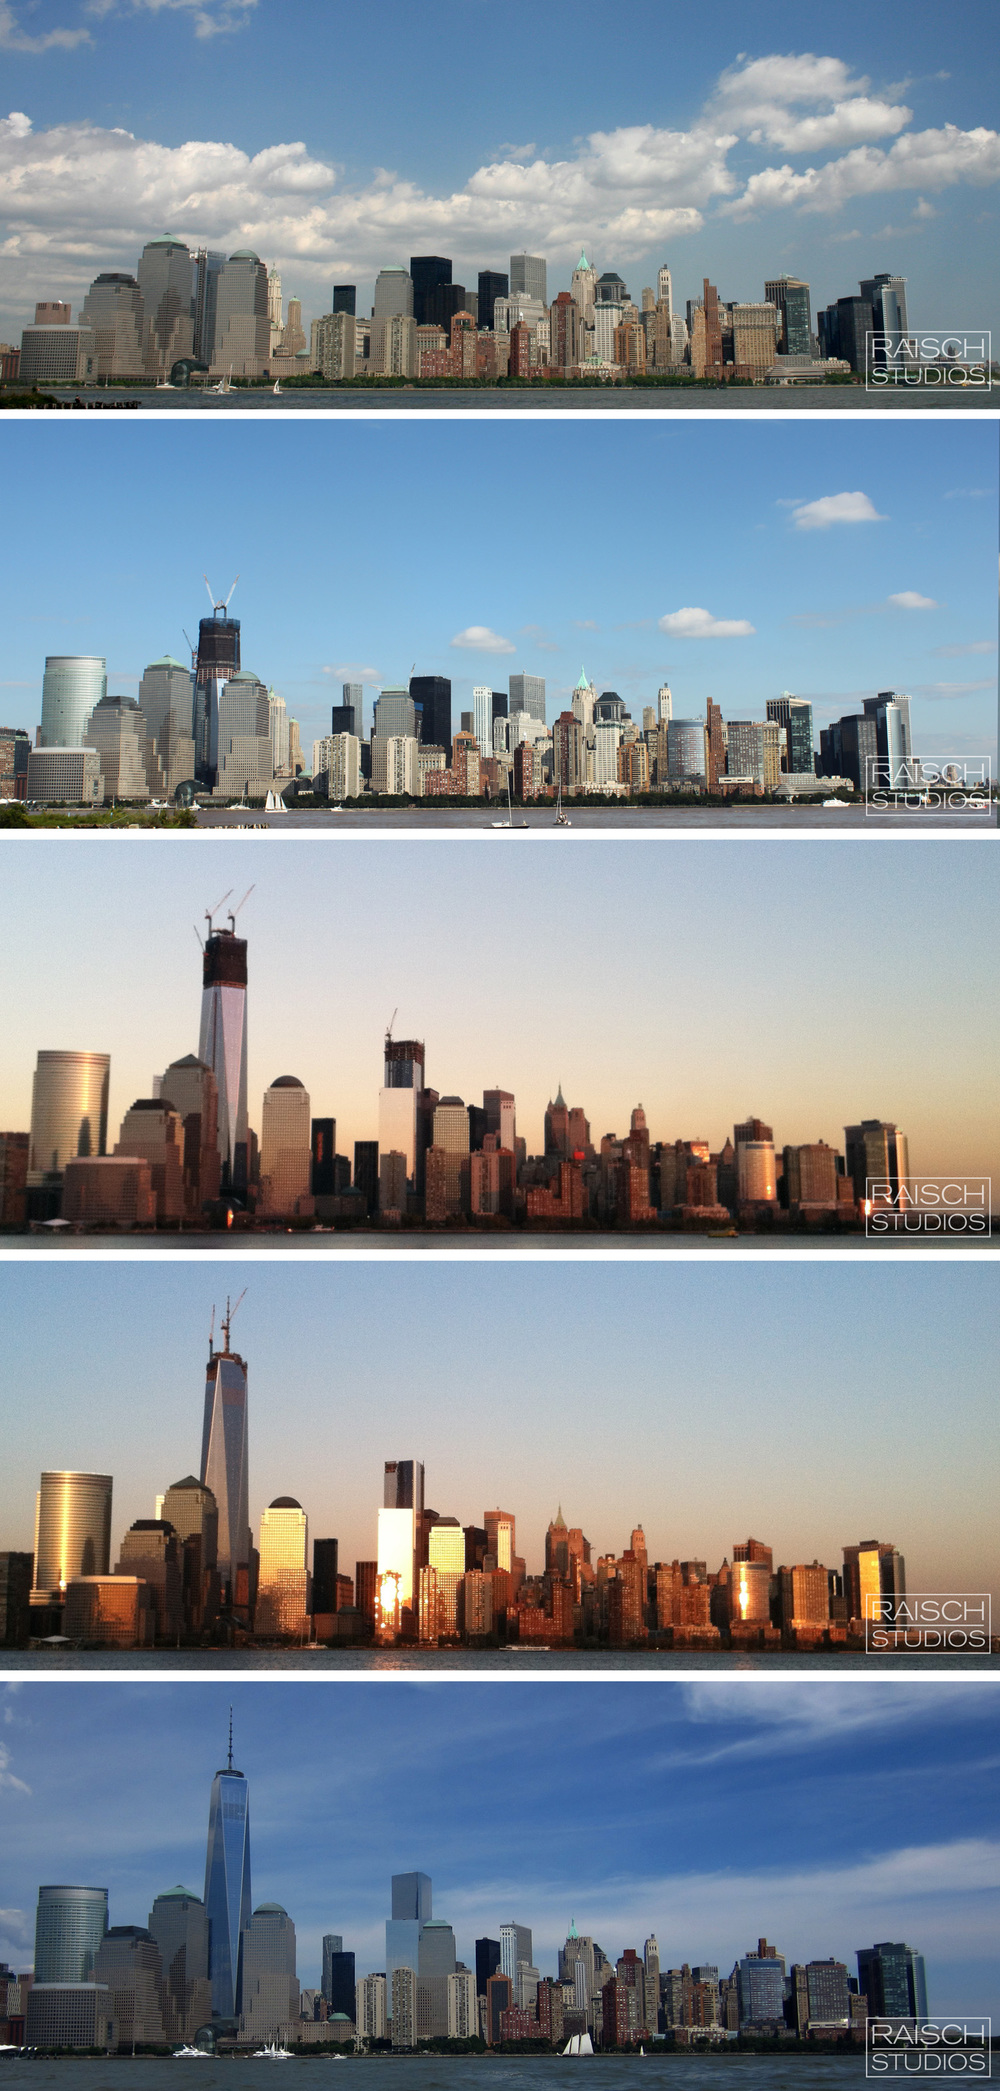 From above: The view of Lower Manhattan from Jersey City and the rise of One World Trade Center 2005-2014 © RaischStudios